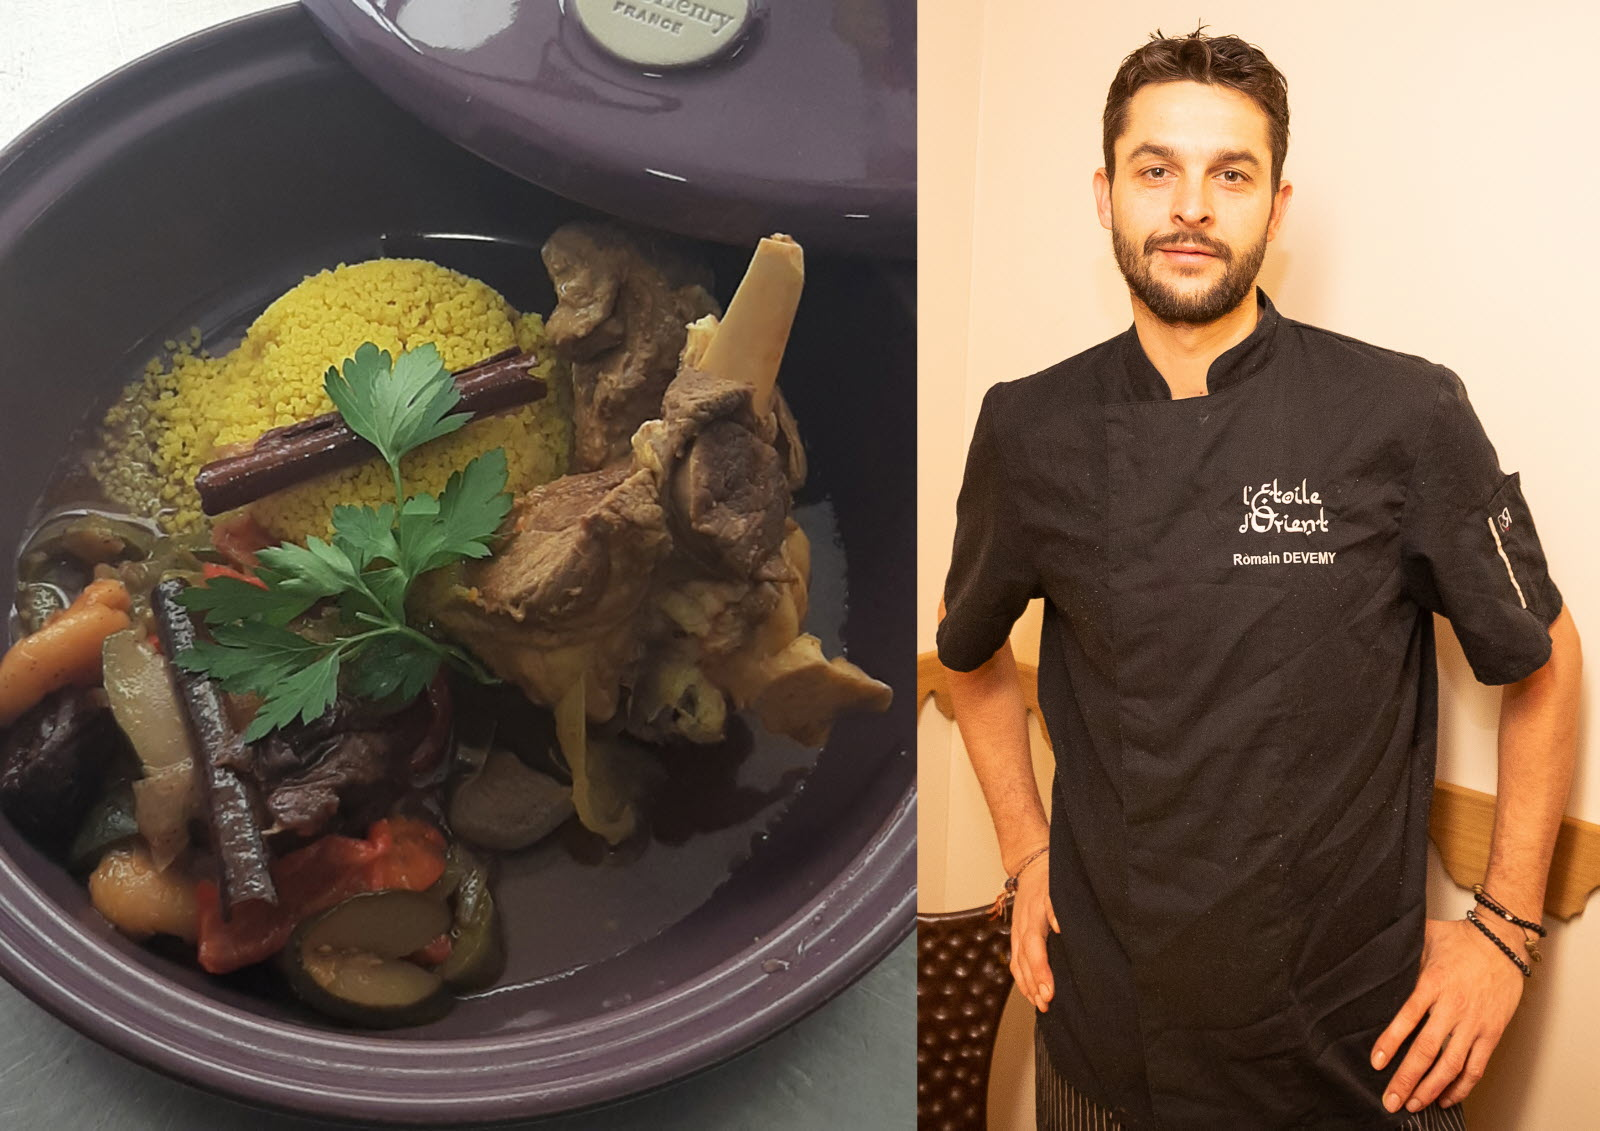 chef confine romain devemy